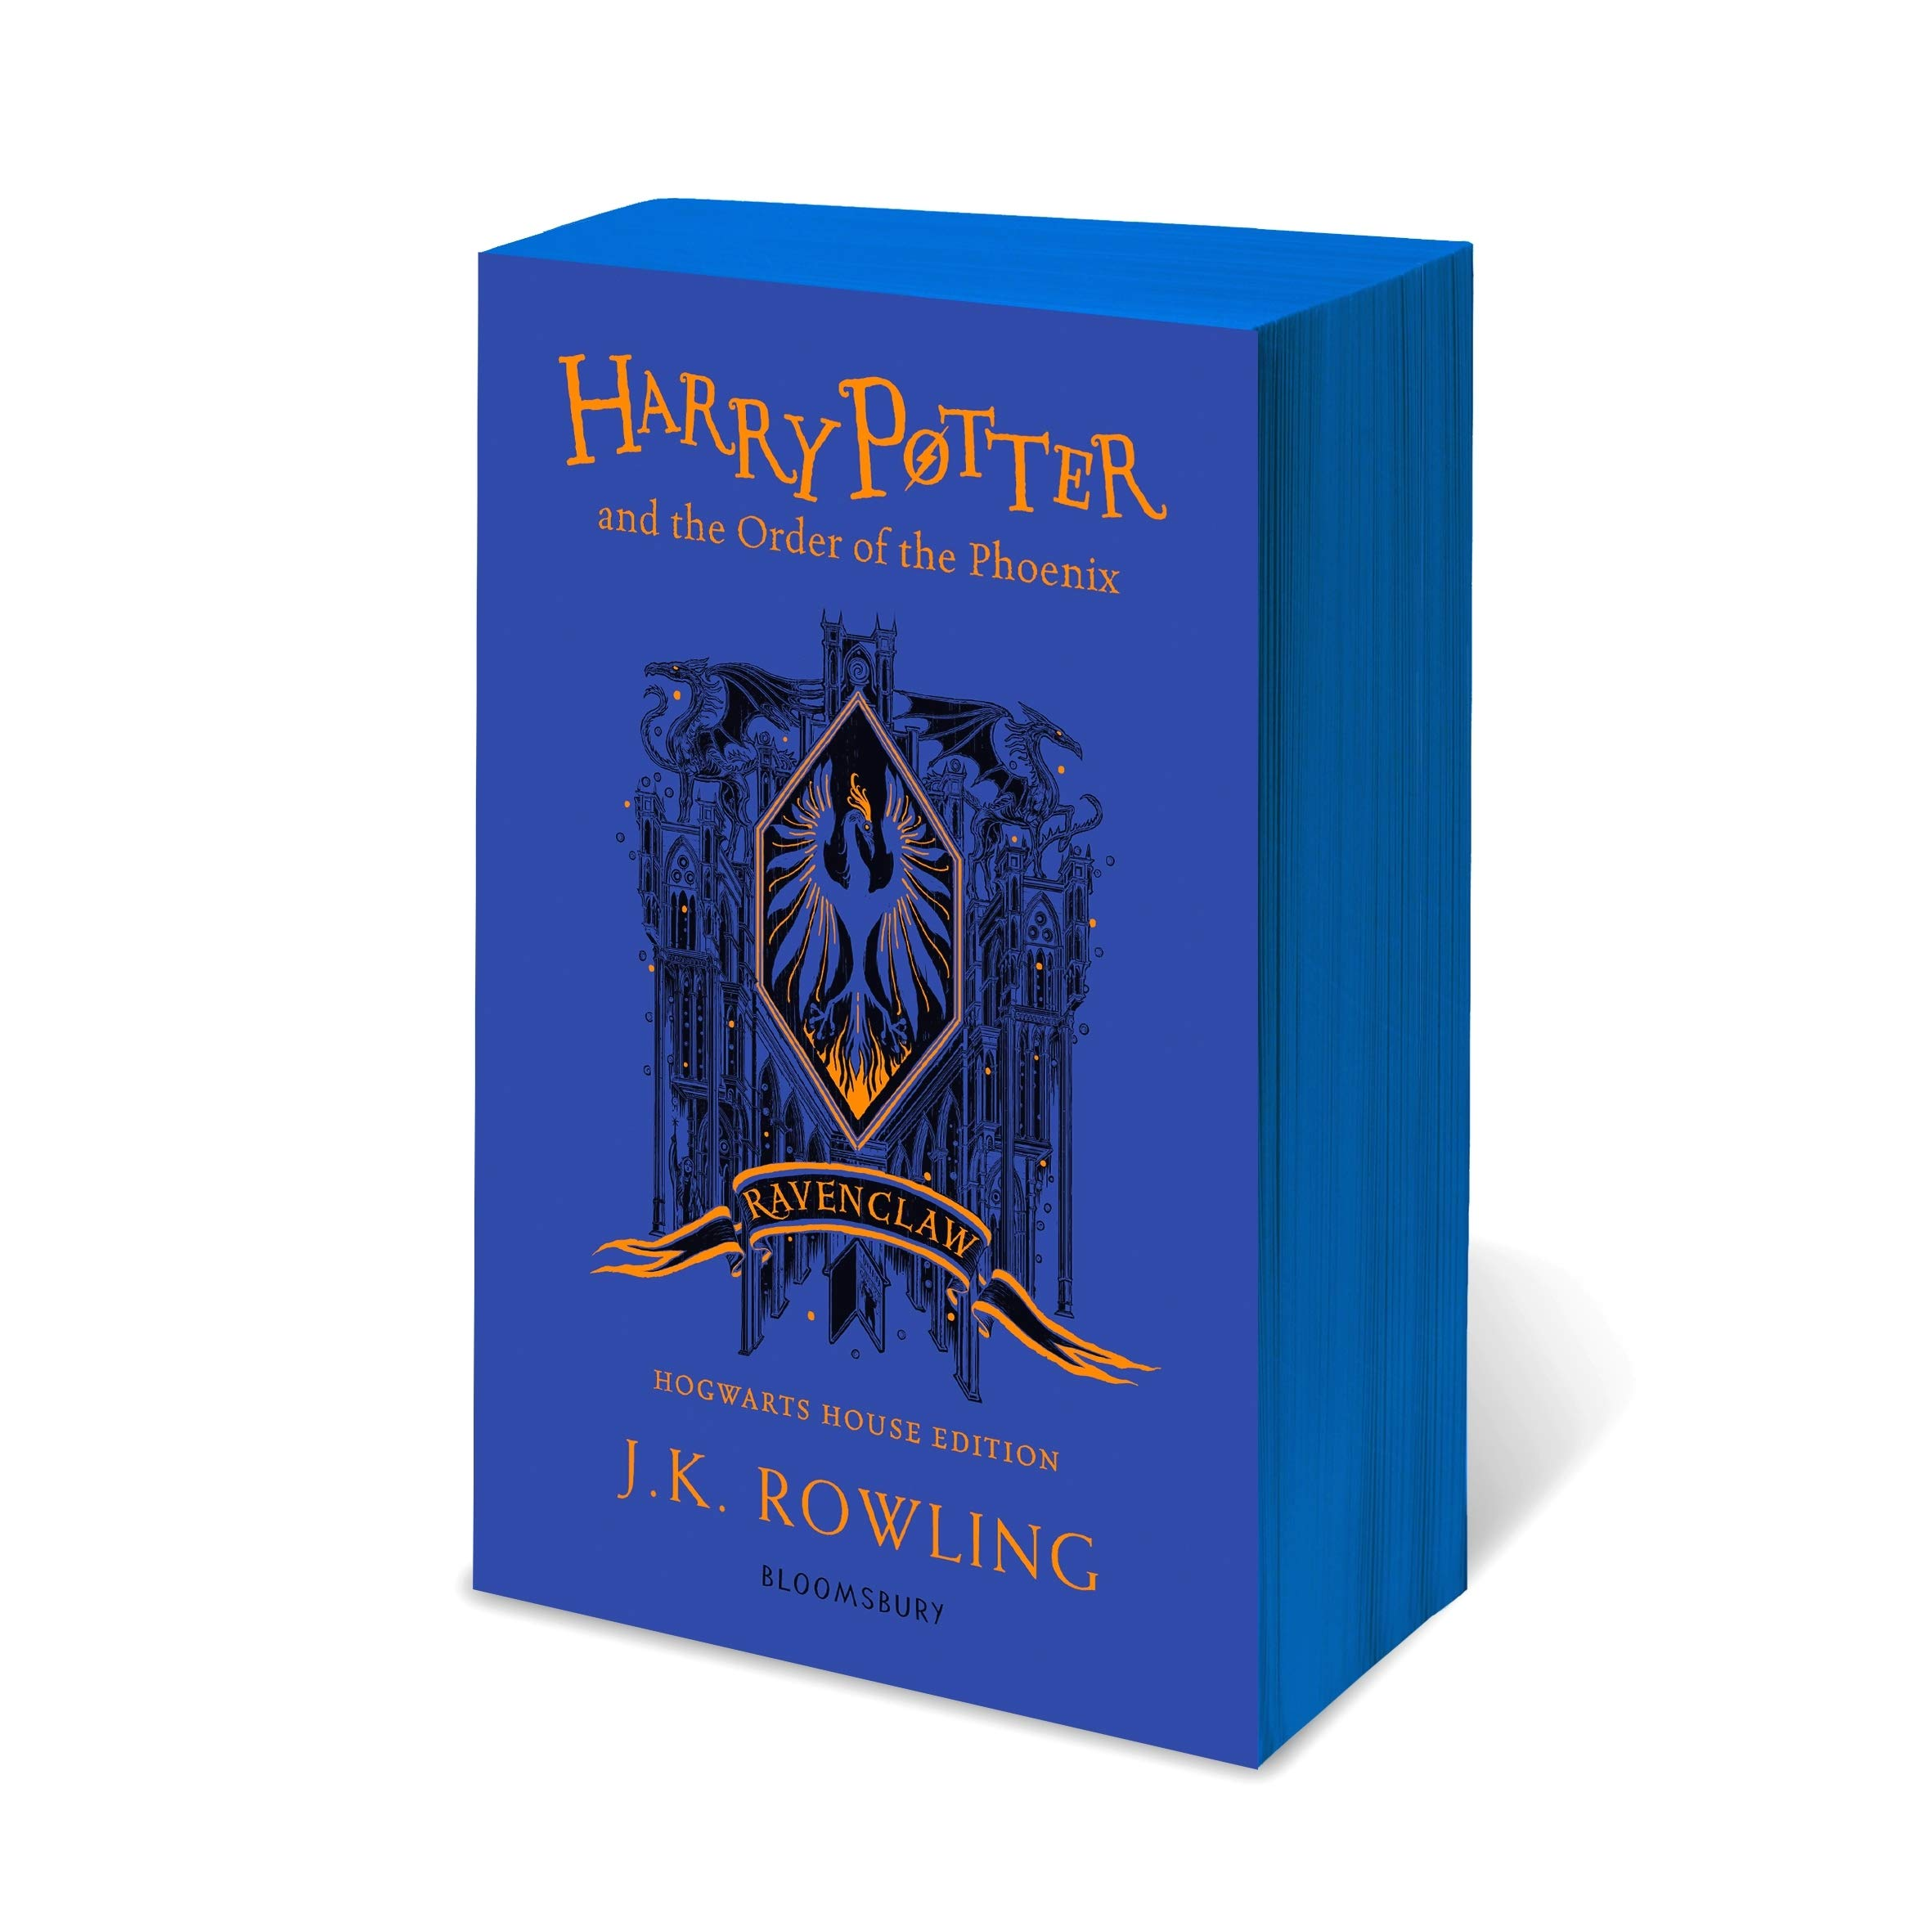 Harry Potter And The Order Of The Phoenix - Ravenclaw Edition House Edition Ravenclaw: Amazon.es: Rowling, J. K., Rowling, J. K.: Libros en idiomas extranjeros